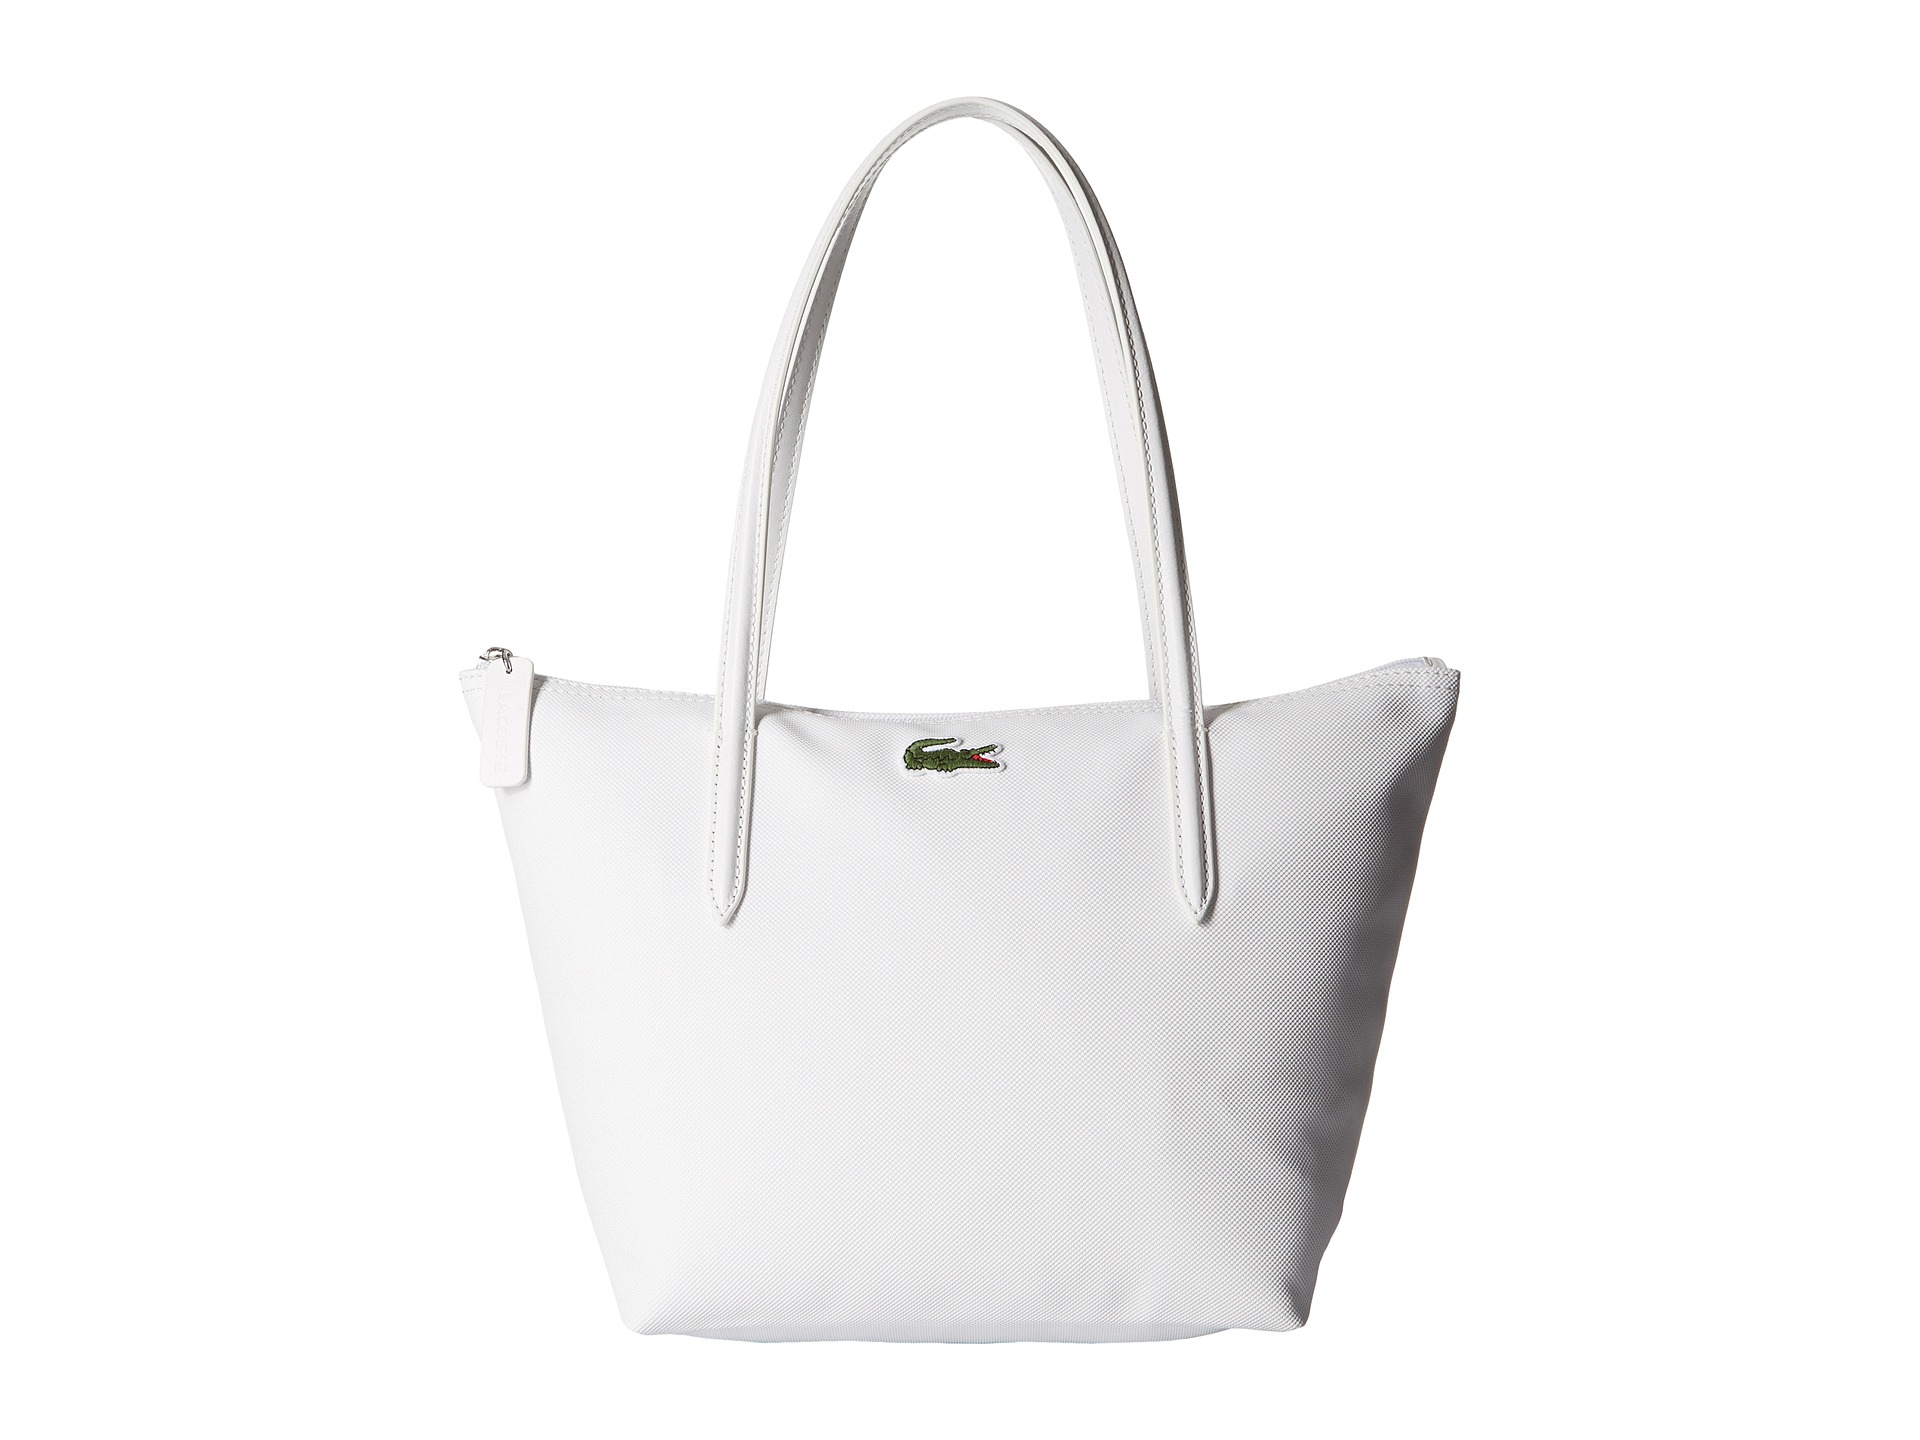 6abbb01a59a Lacoste L.12.12 Concept Medium Small Shopping Bag in White - Lyst